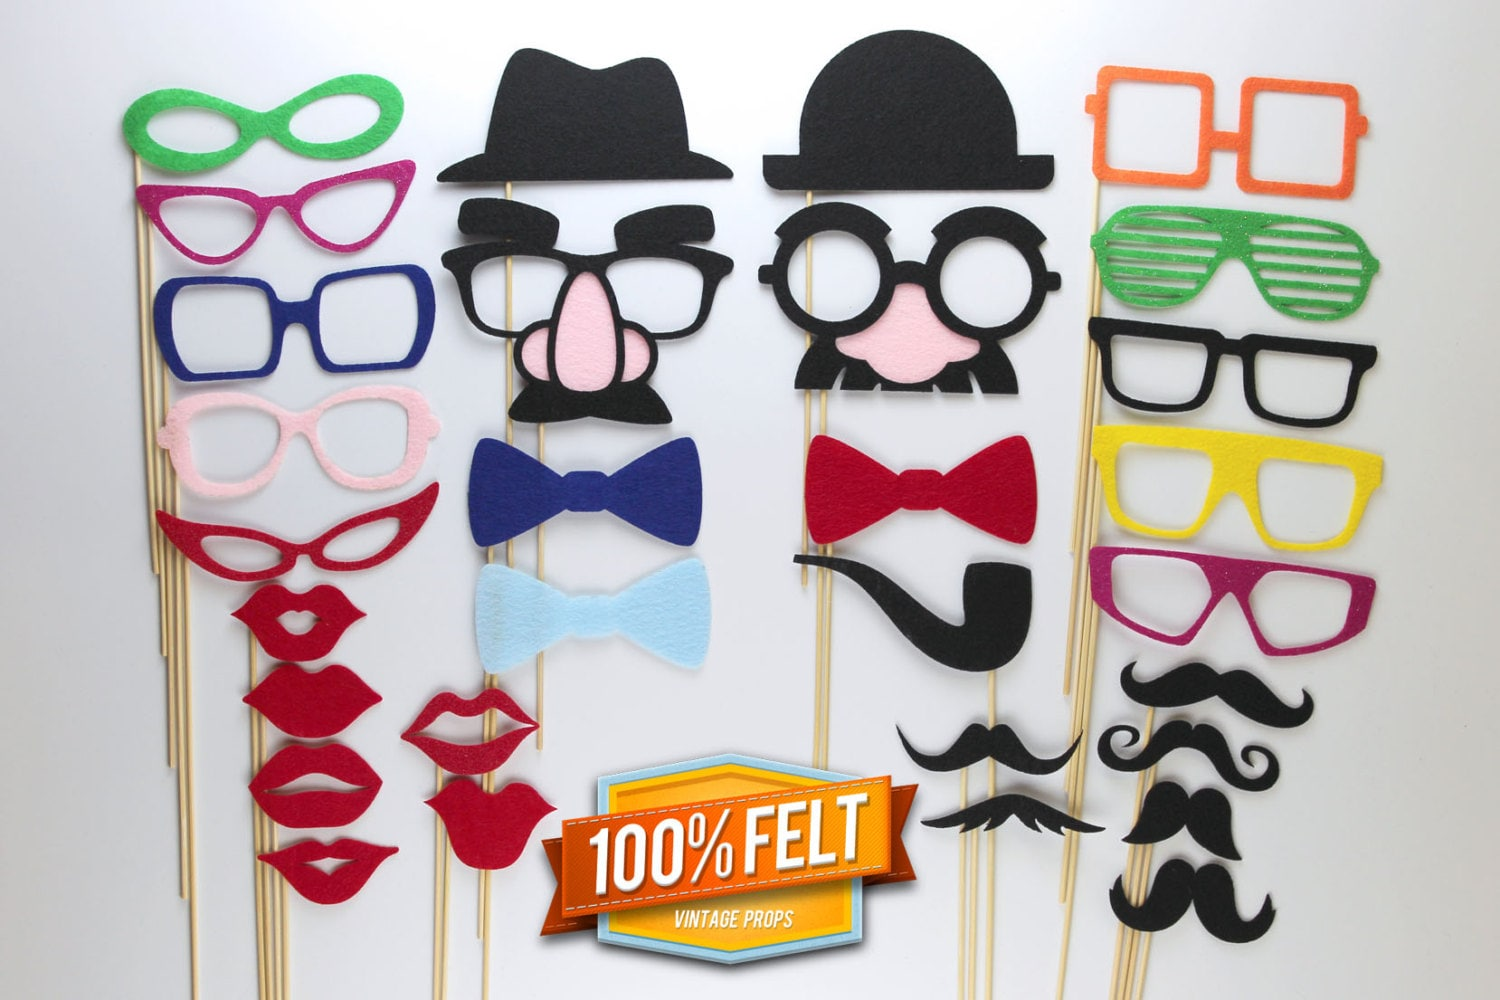 Photo Booth Props - 30 Piece Felt Premium Photo Booth Prop Package